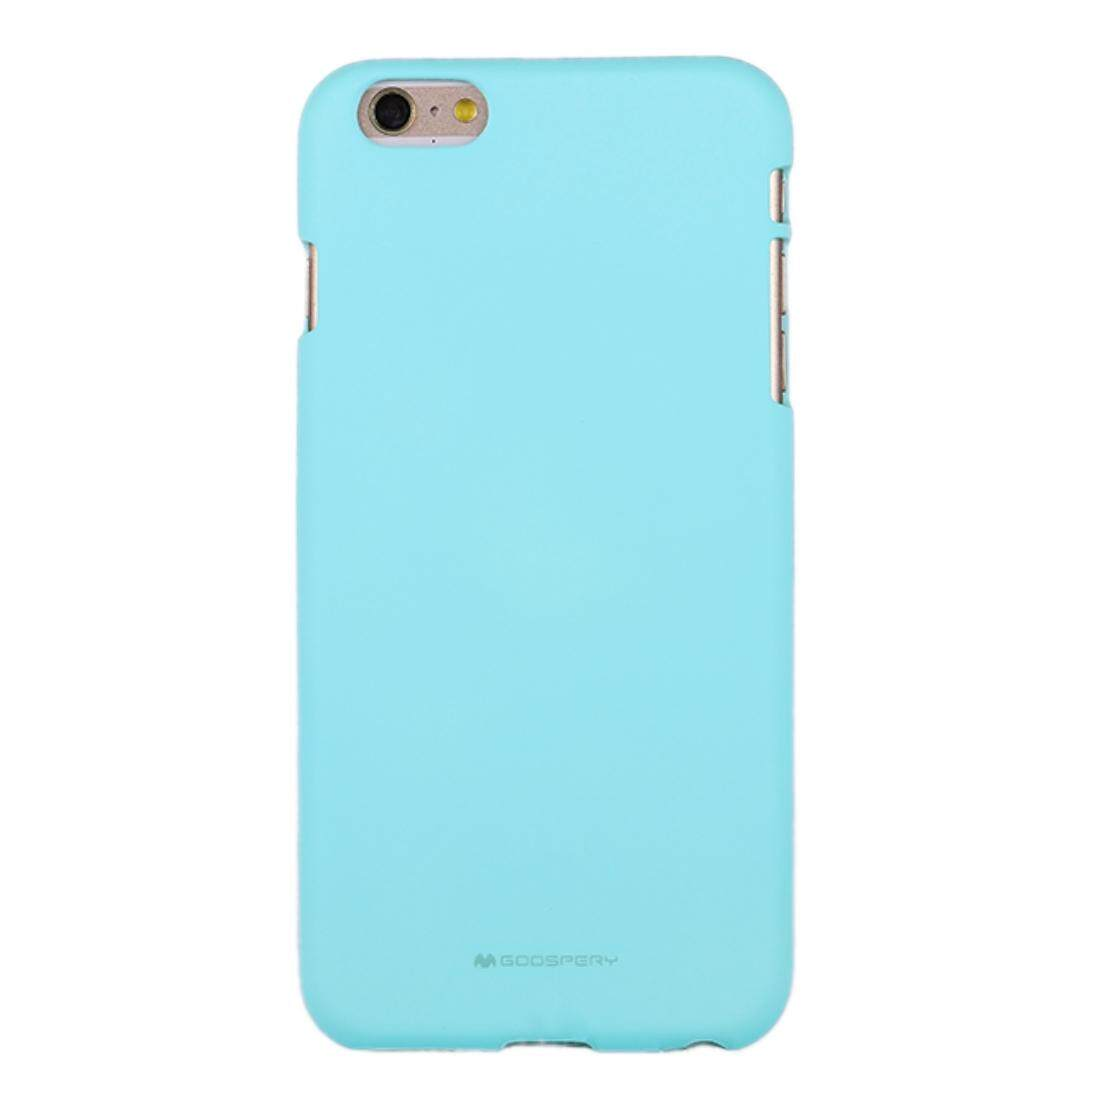 Fitur Mercury Goospery Soft Feeling For Iphone 6 6s Liquid State Samsung Galaxy S7 Edge Jelly Case Black Detail Gambar Tpu Drop Proof Protective Back Cover Mint Green Terbaru